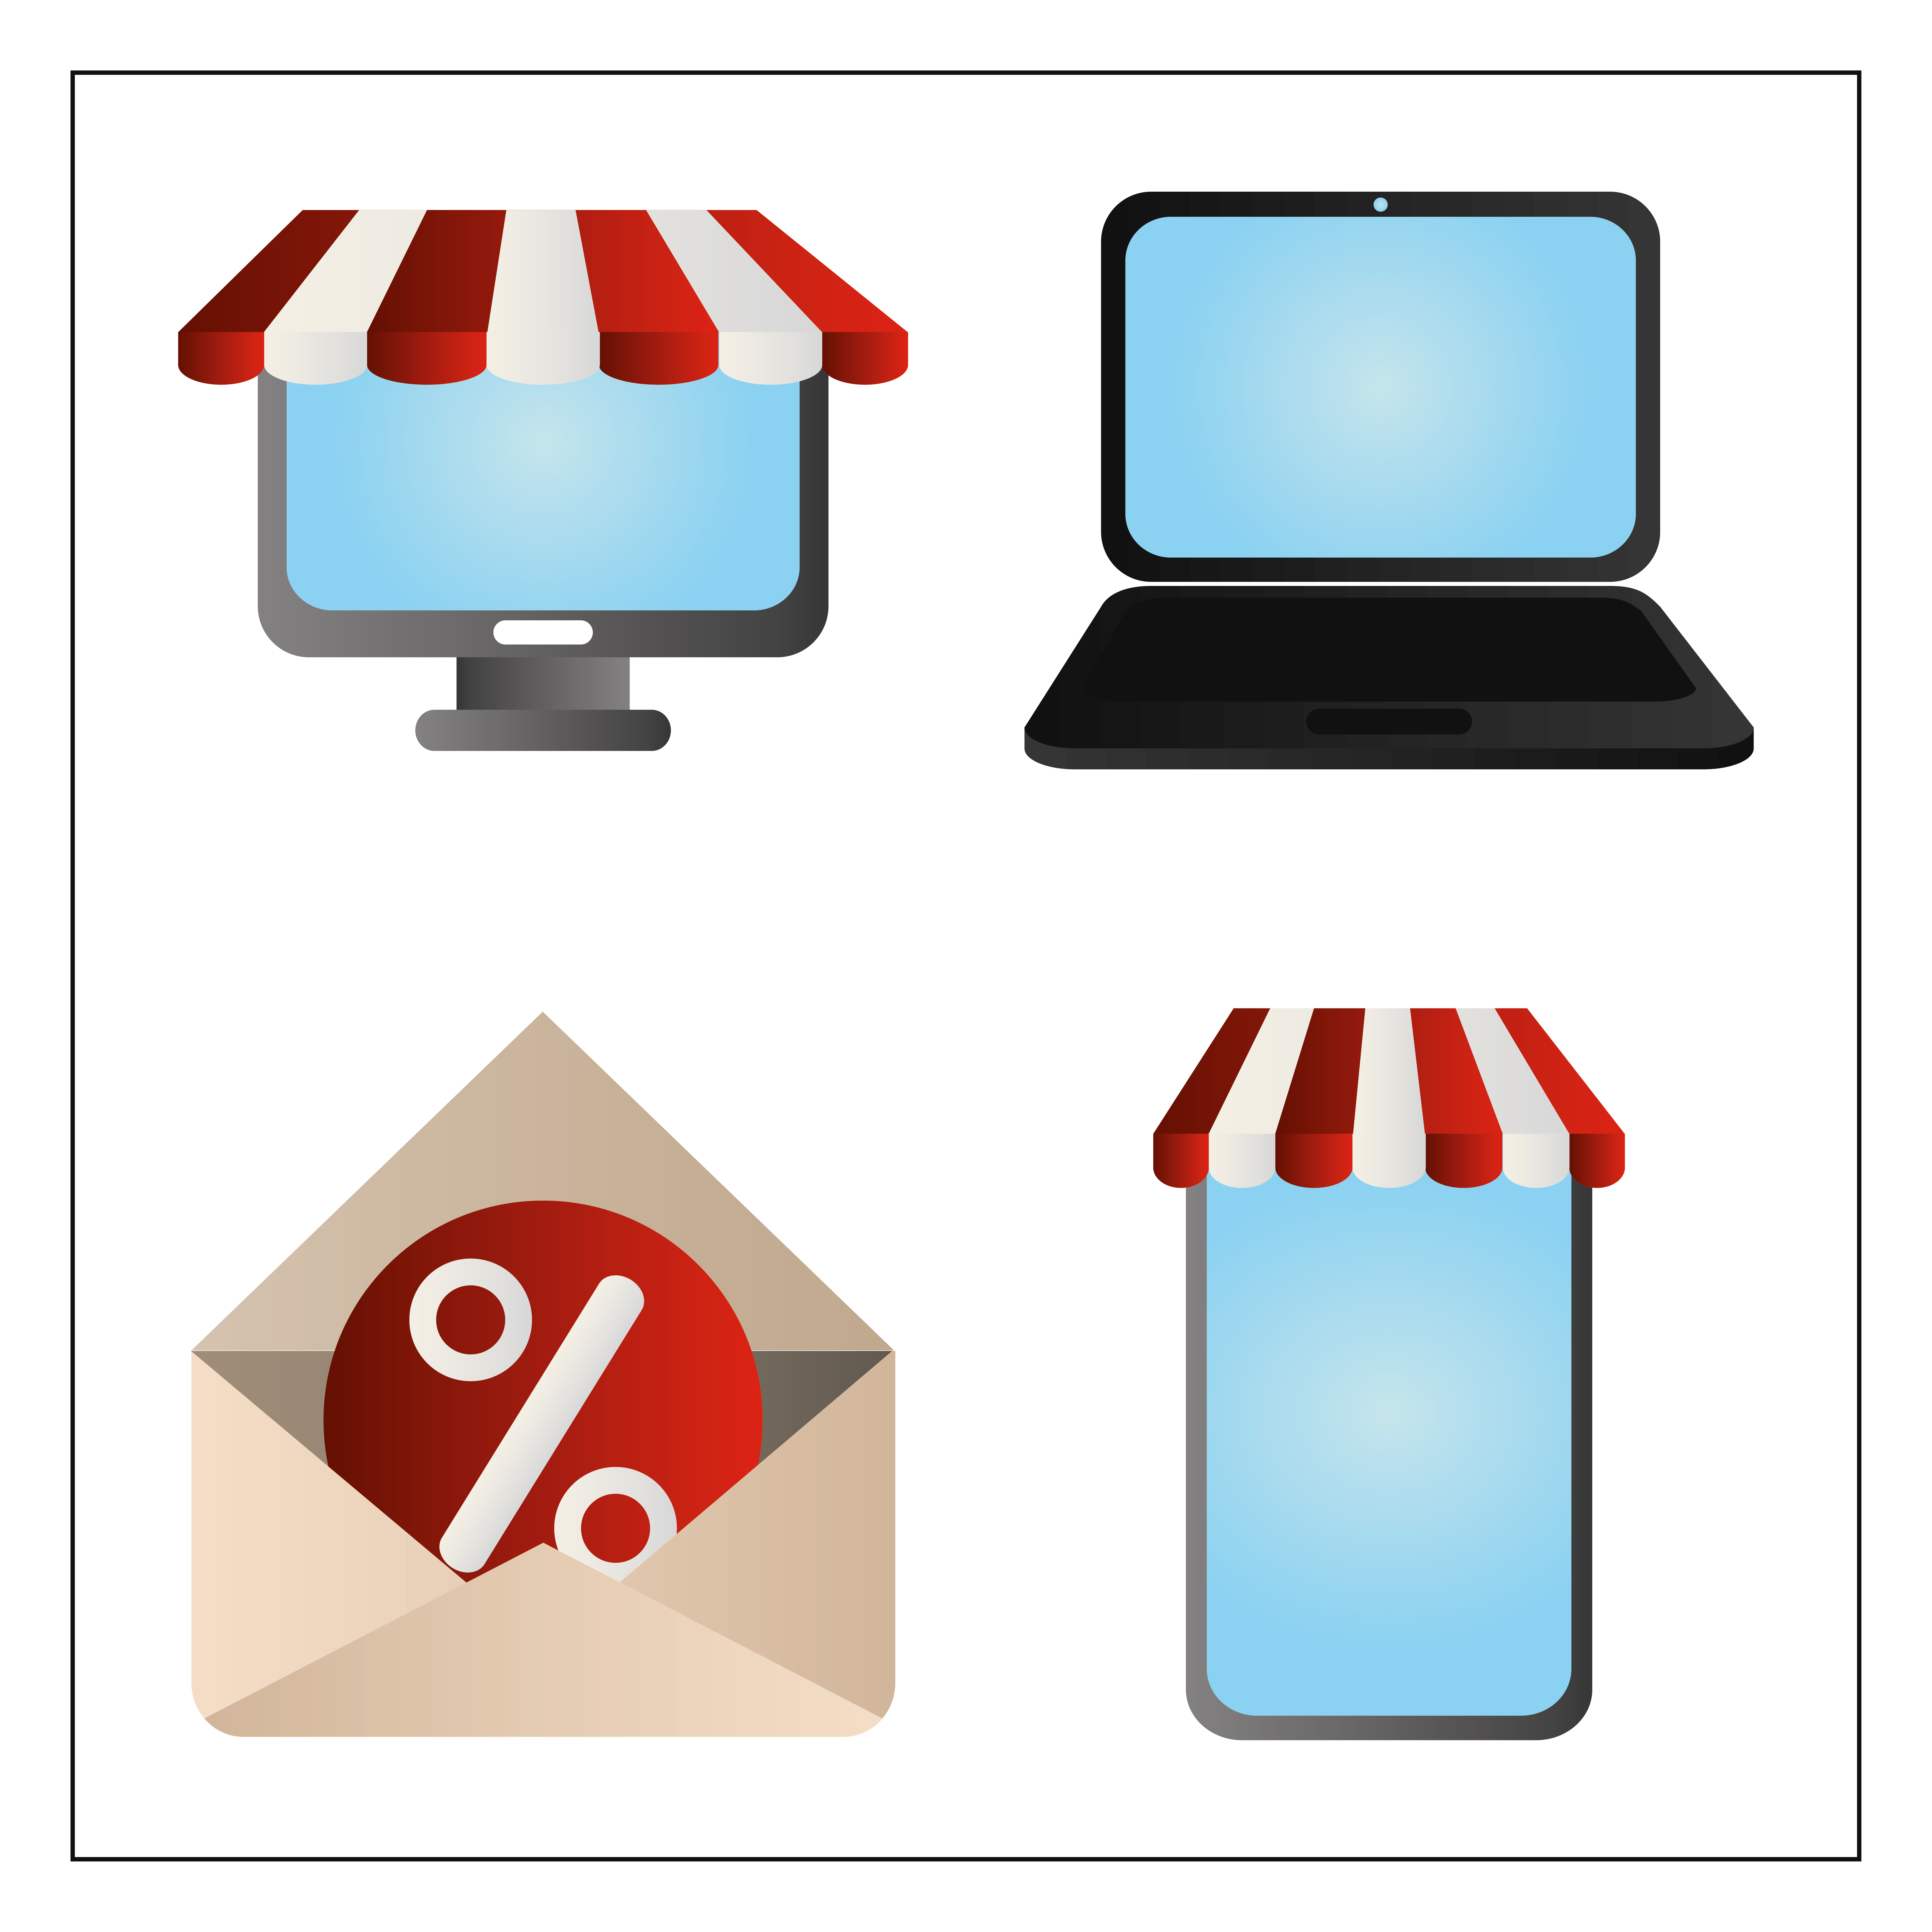 Cyber Monday Computer Laptop Smartphone And Email Download Free Vectors Clipart Graphics Vector Art